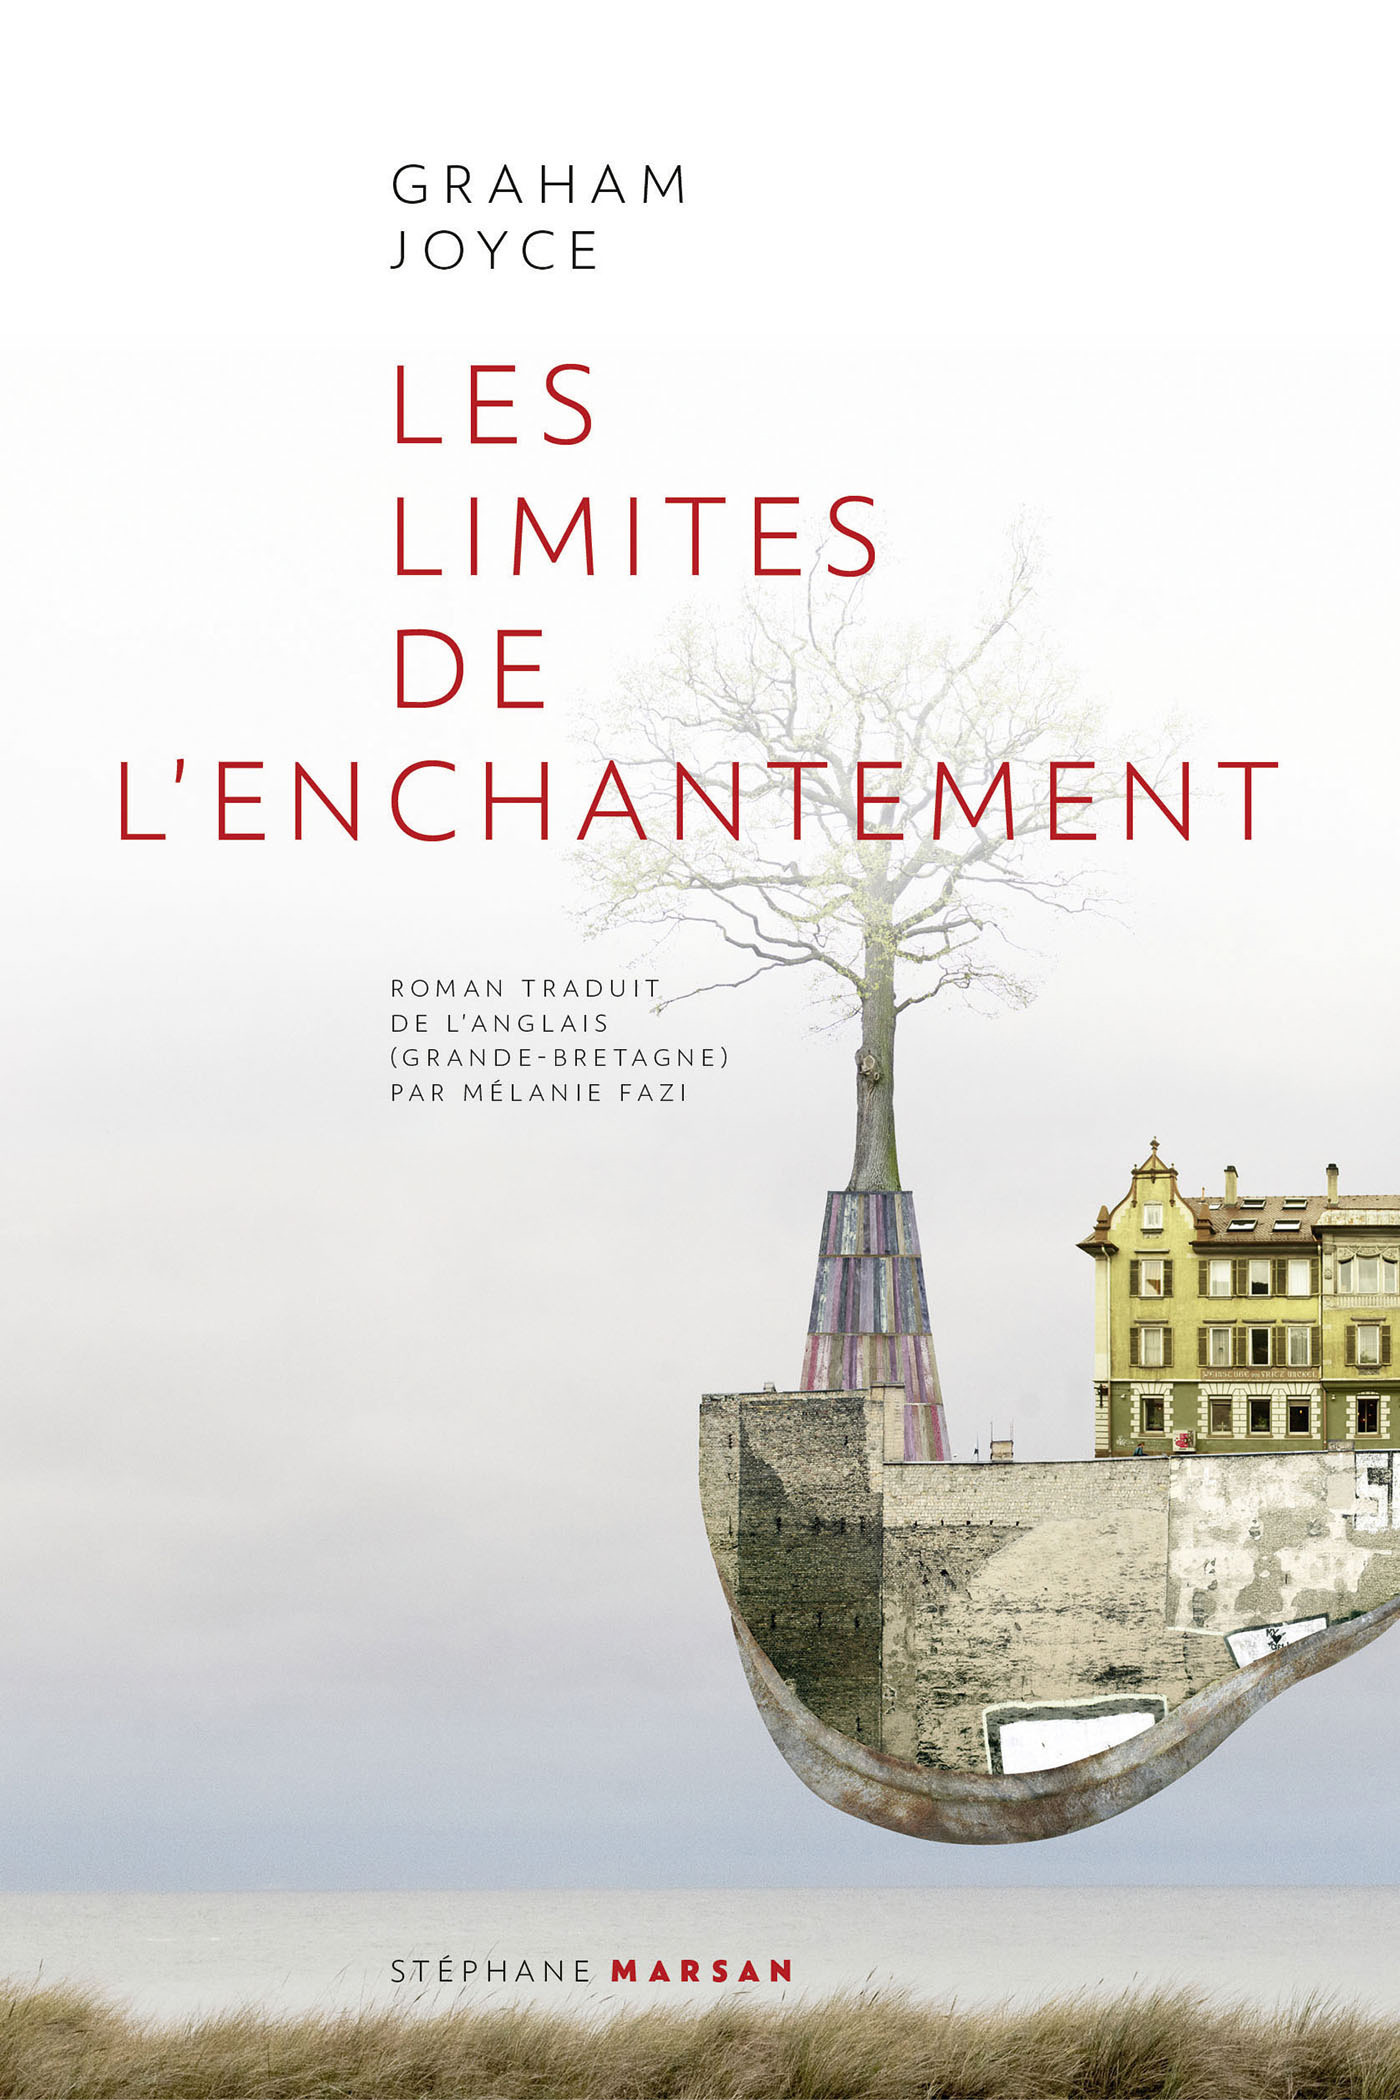 Les limites de l'enchantement